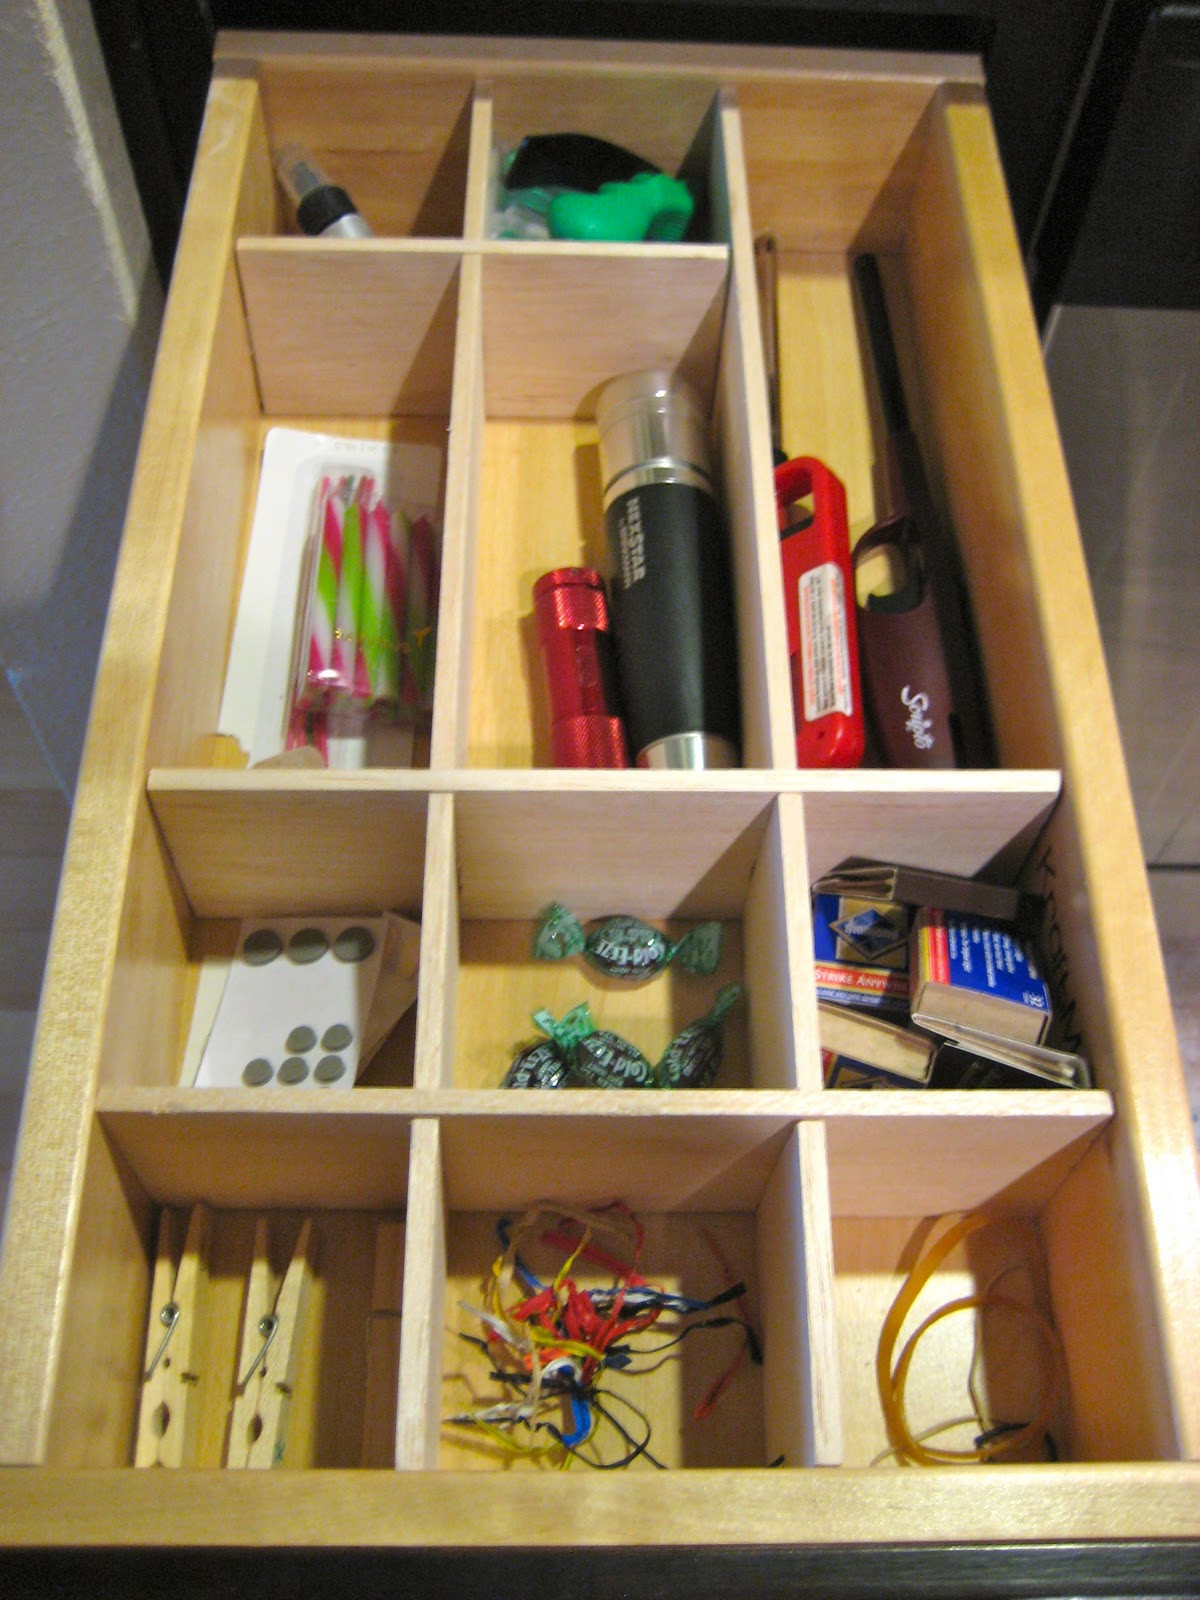 Best ideas about DIY Drawer Dividers . Save or Pin C R A F T 72 Drawer Organizer Part 2 C R A F T Now.